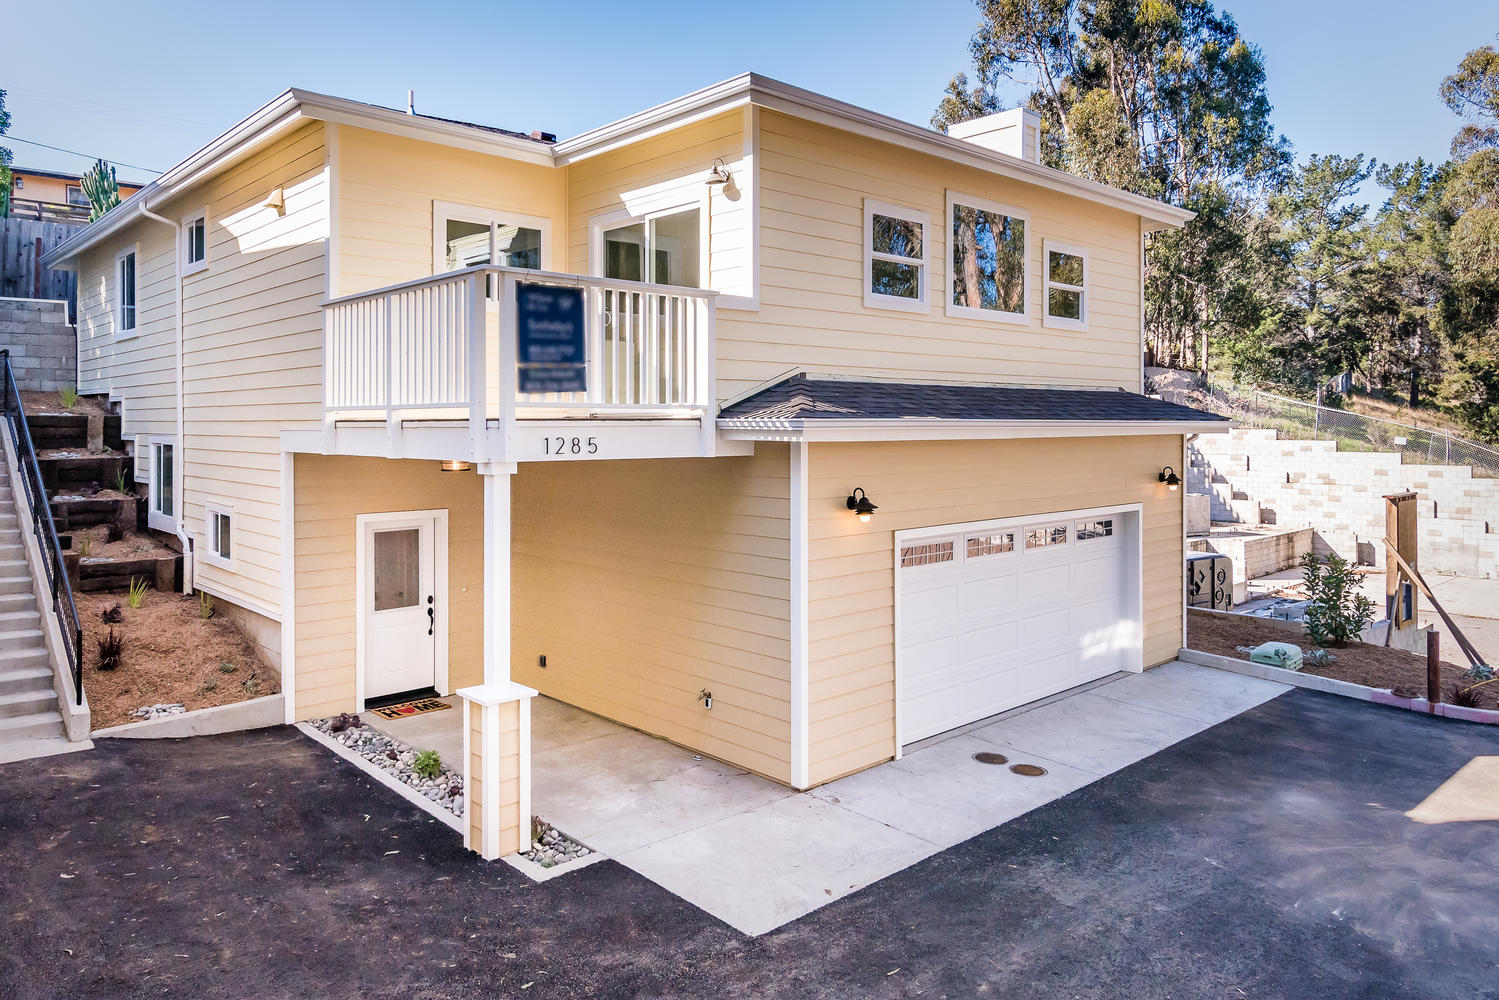 Single Family Home for Sale at Sundancer Village 1285 Main Street Morro Bay, California 93442 United States